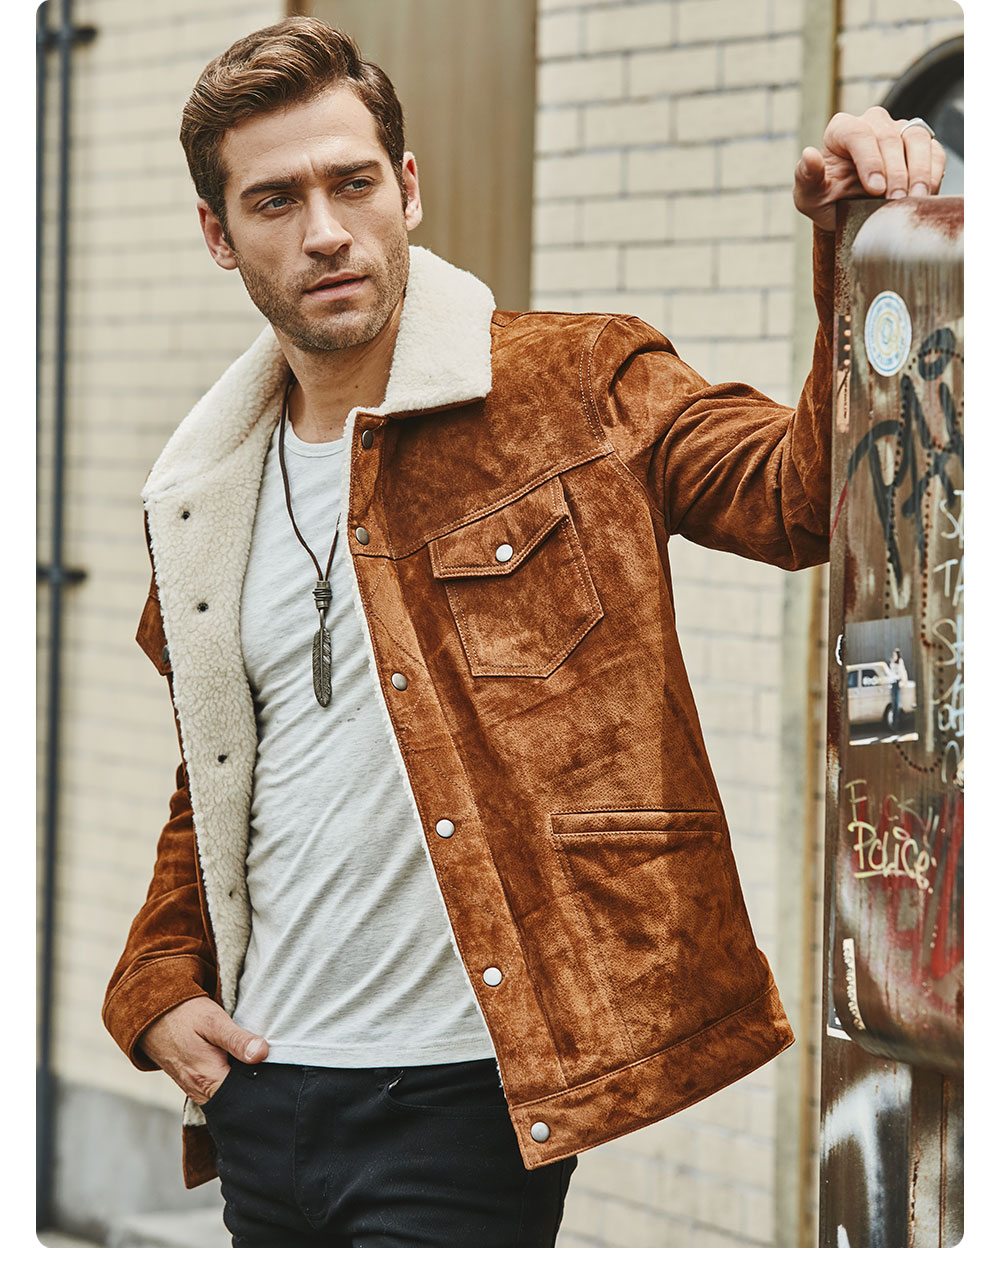 Hed833aecf9934d5eb28bd17ebfefd5b9F FLAVOR New Men's Real Leather Jacket Genuine Leather With Faux Shearling Warm Coat Men